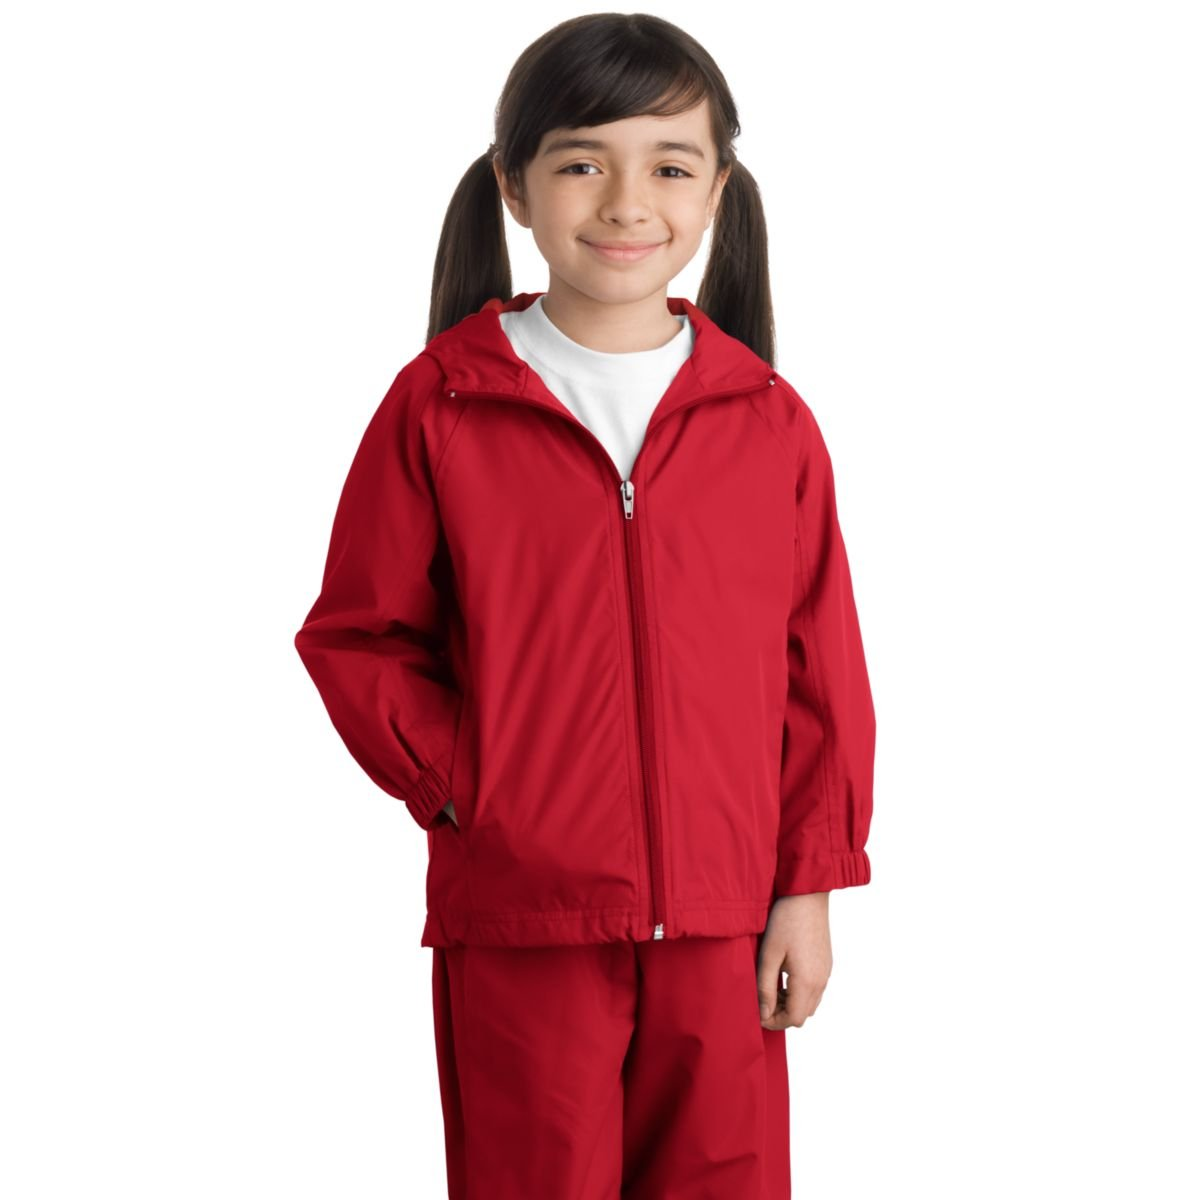 Sport Tek Youth Hooded Raglan Jacket